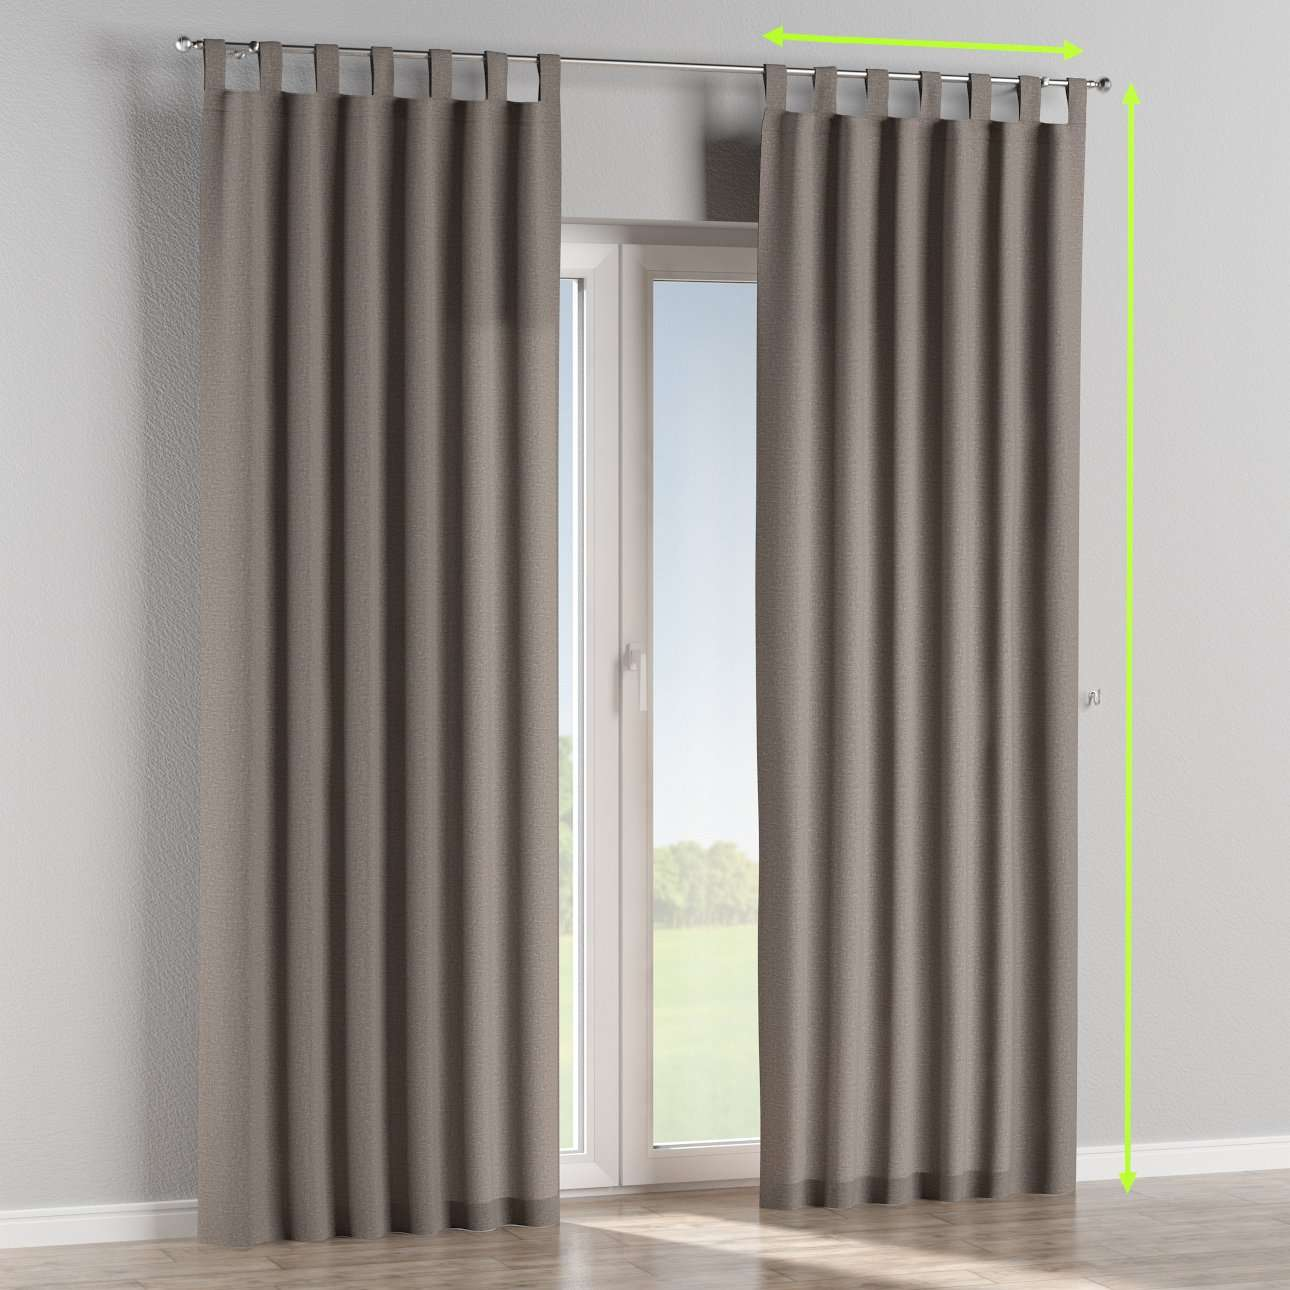 Tab top lined curtains in collection Edinburgh , fabric: 115-81